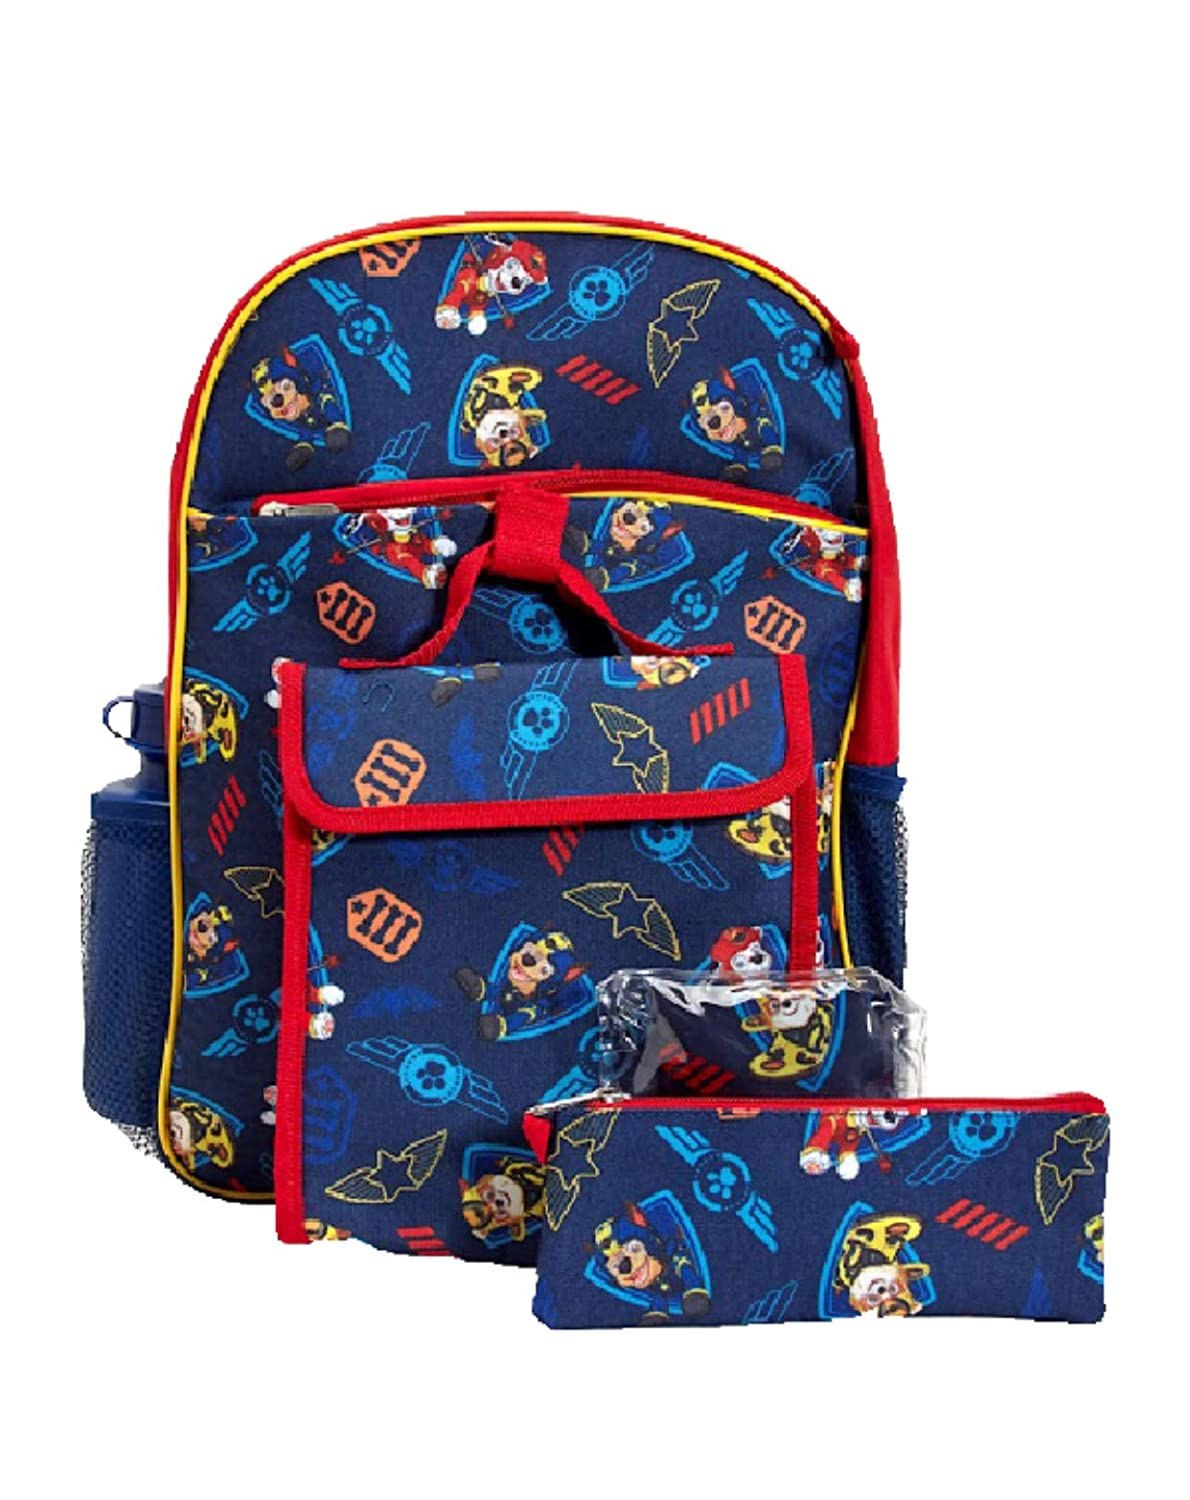 a73d25f2c0 Amazon.com  Nickelodeon Paw Patrol 5-Piece Backpack Set  Gifts N Deals  Boutique